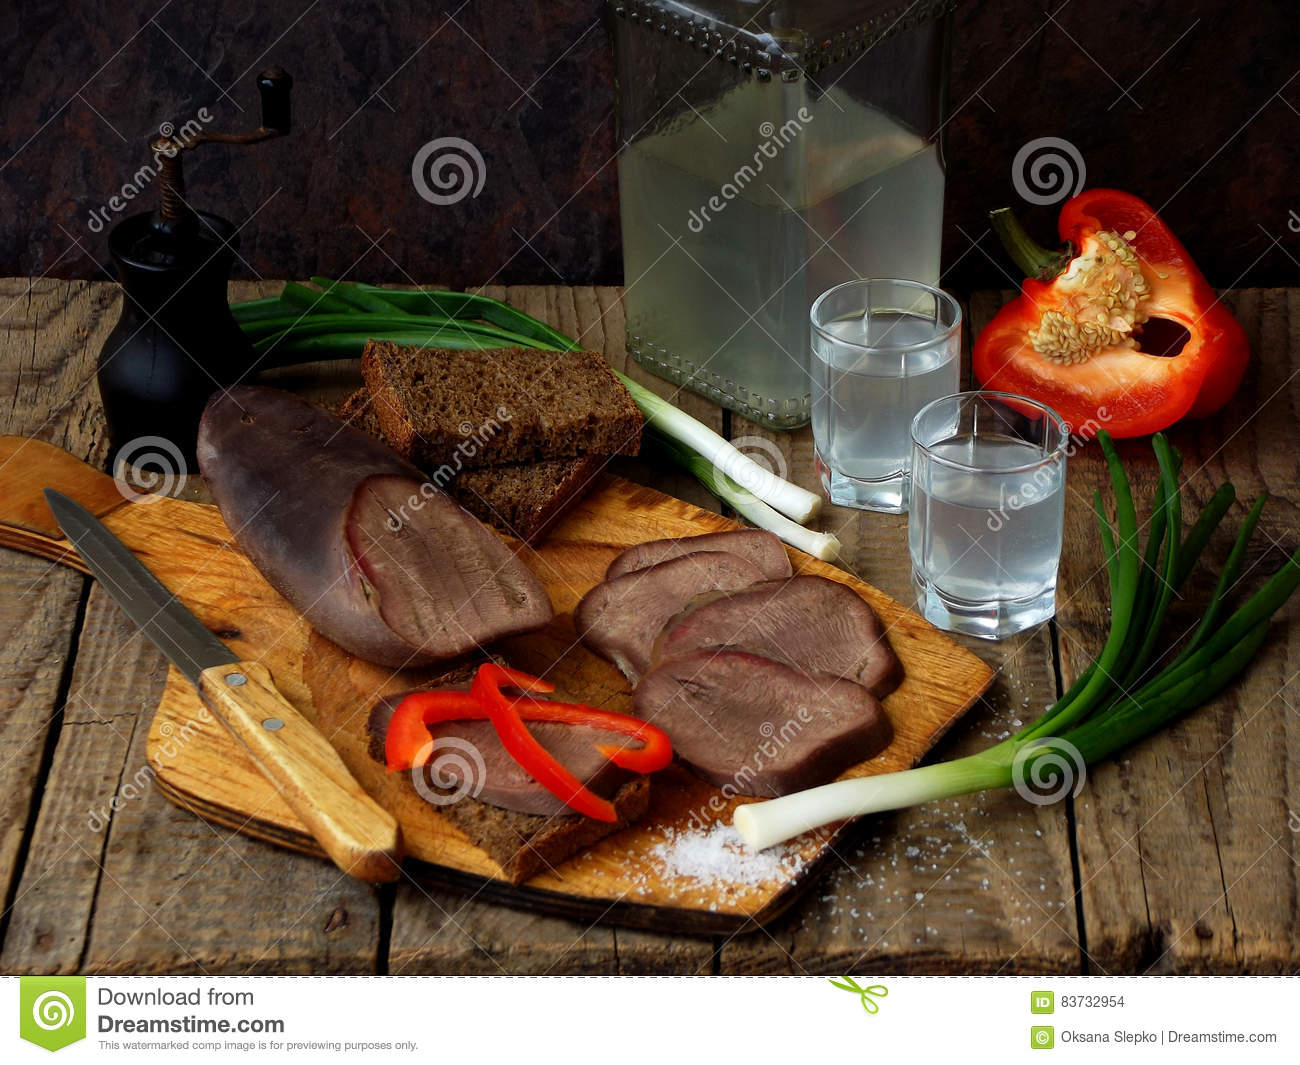 Neat`s tongue appetizer with vodka.